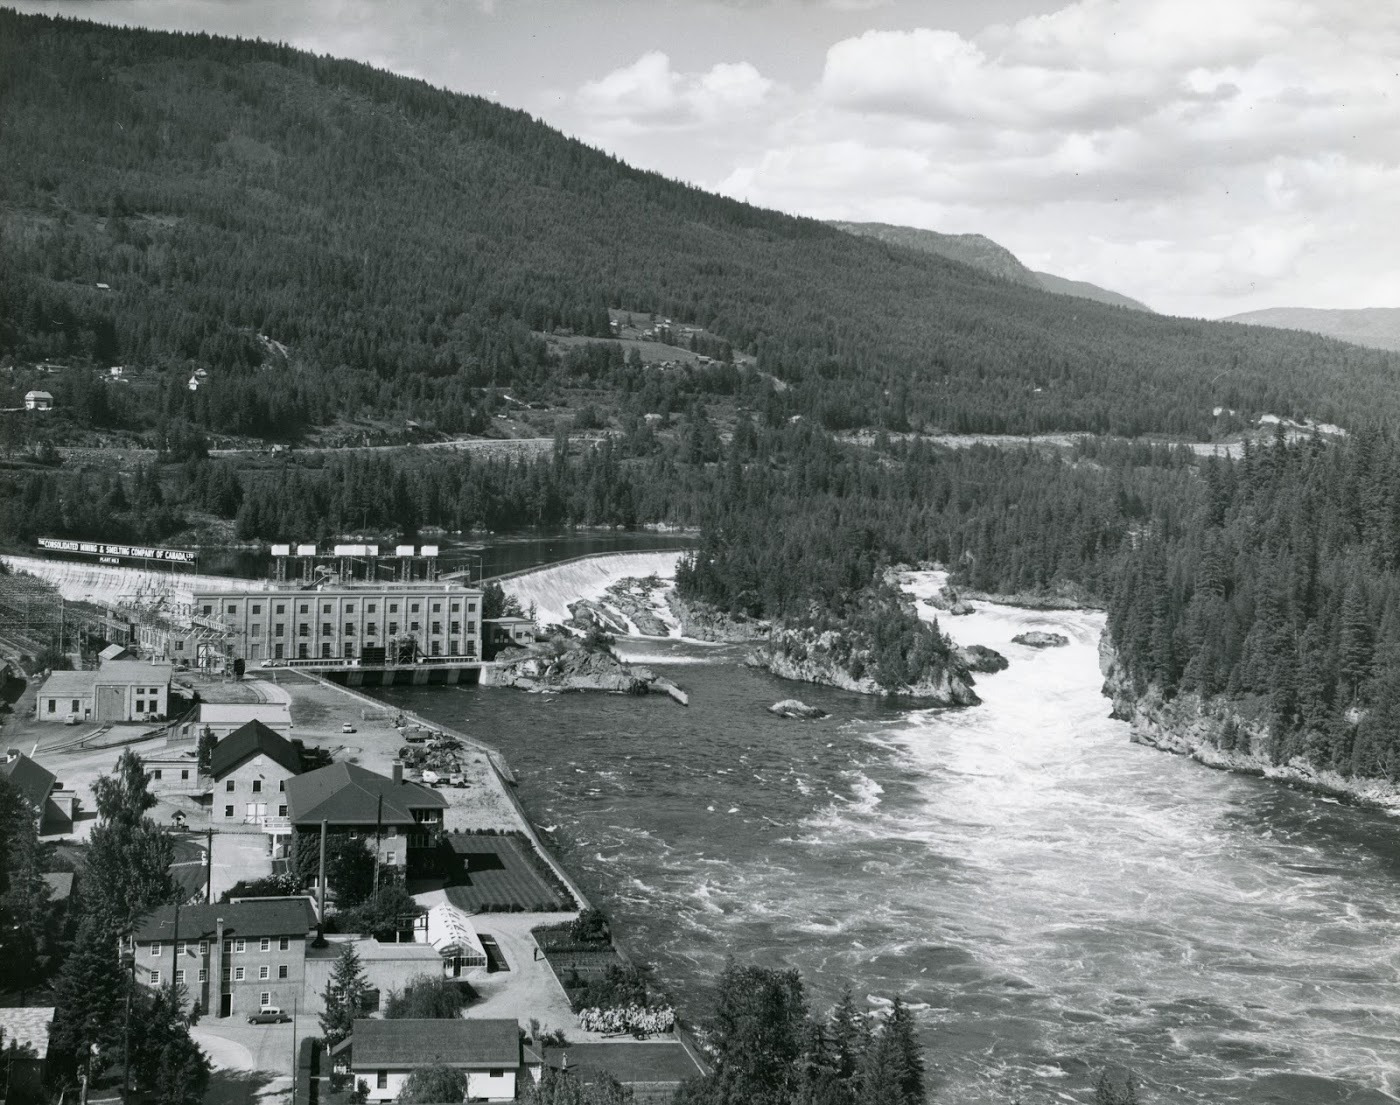 1928:Plant No. 3 is Built - Keeping up with greater electrolytic zinc operations at CM&S, a third dam, named the South Slocan Dam, is built.Photo 2320.0039: The South Slocan Dam during its operation. Date unknown.